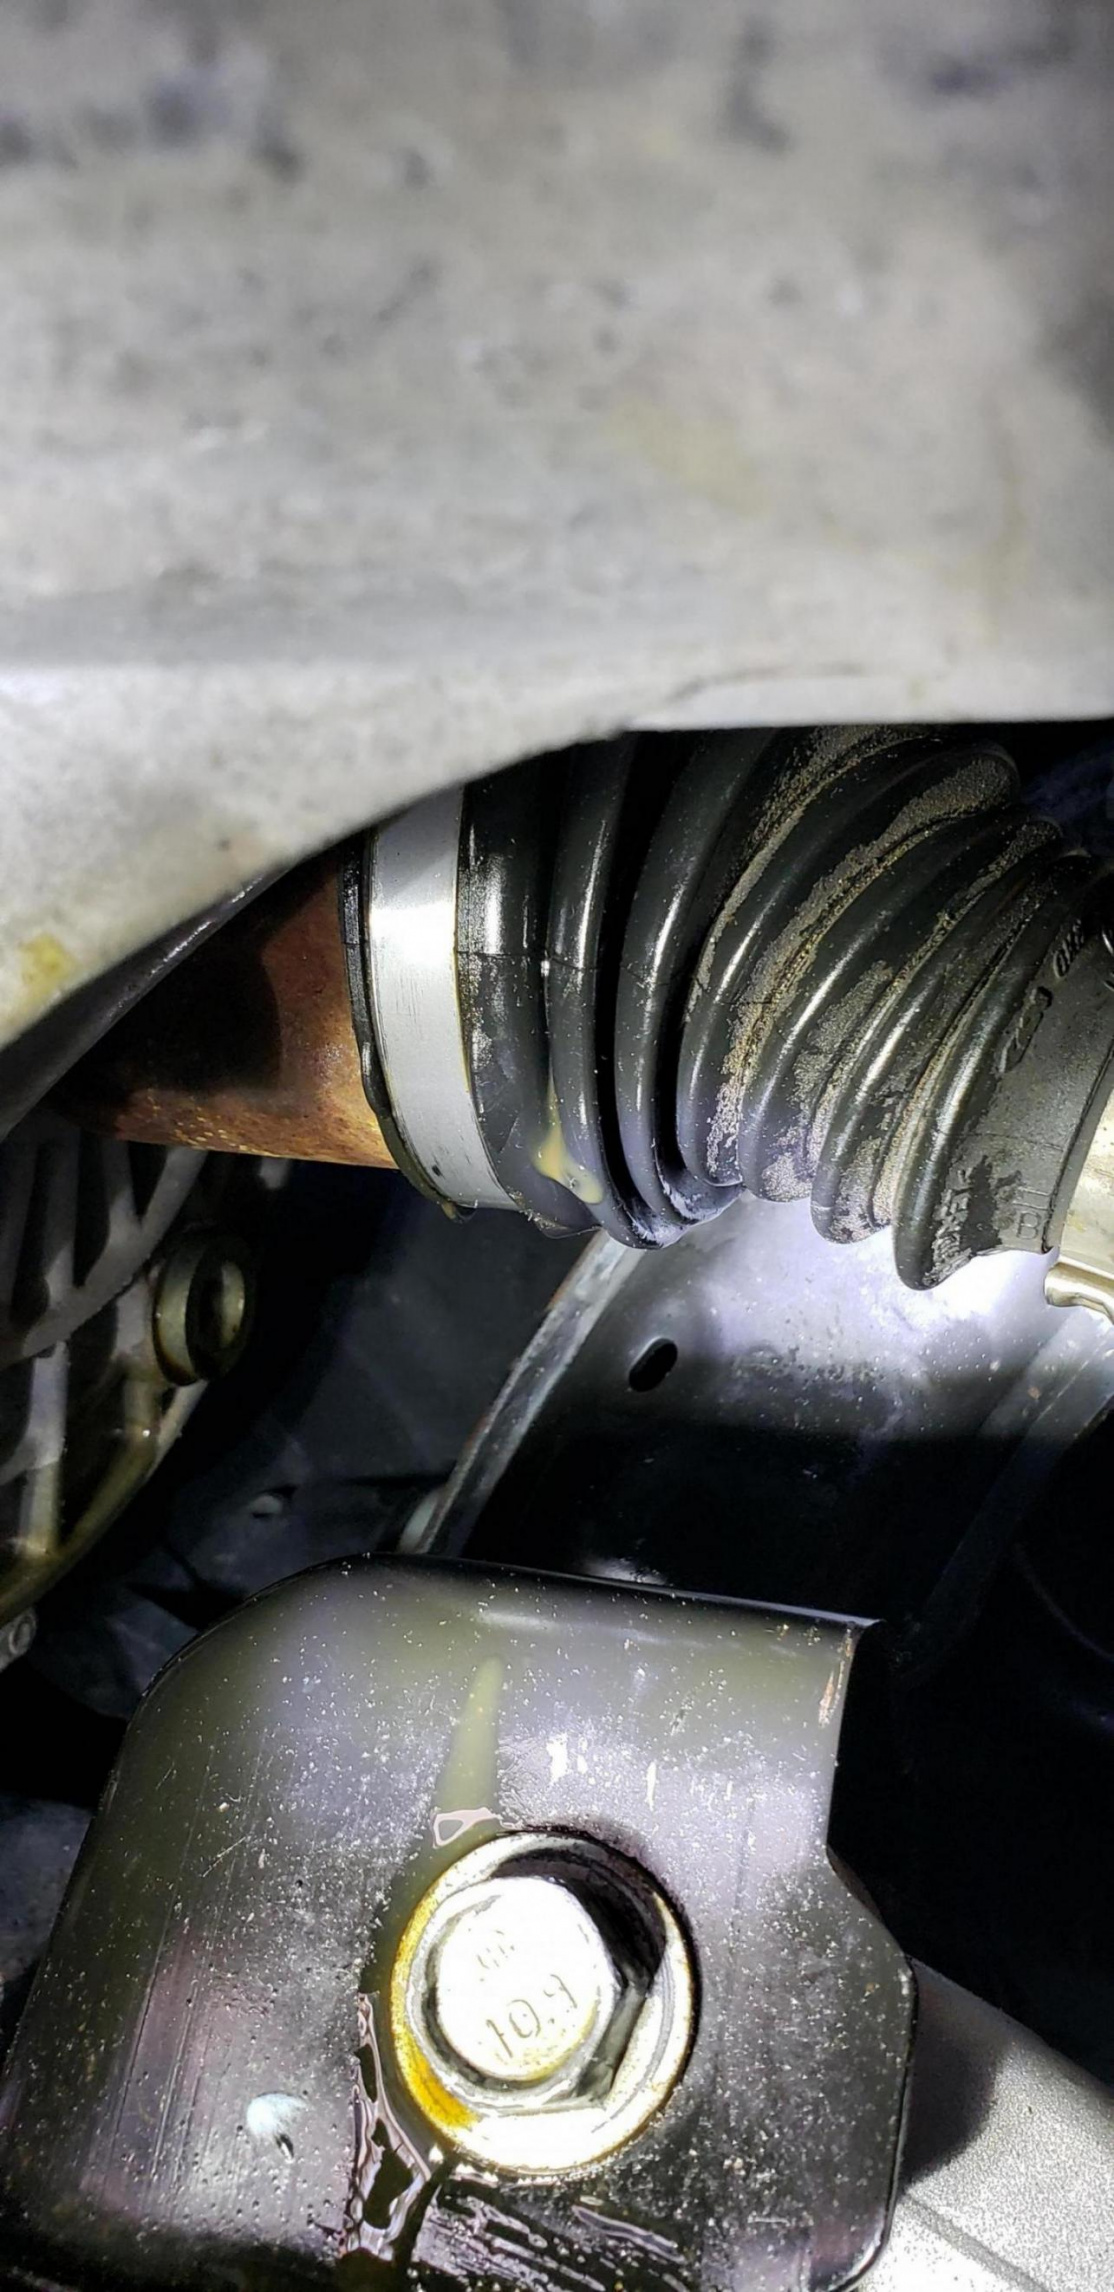 2012 Focus SE left axle leaking-20190814_160937_1565817778316.jpg